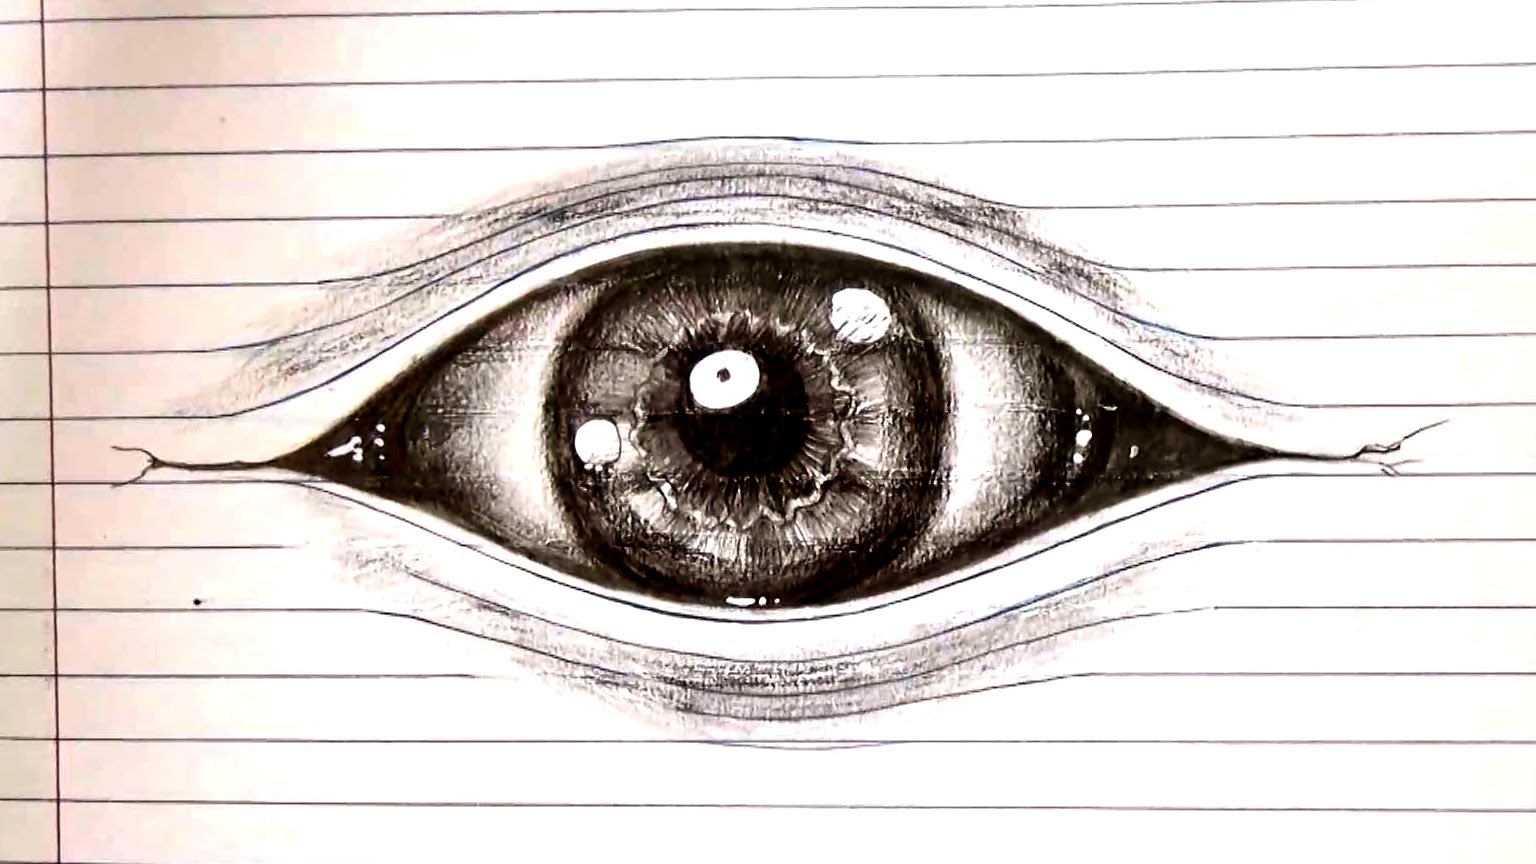 Drawn optical illusion creative ✦how lined Drawing an to